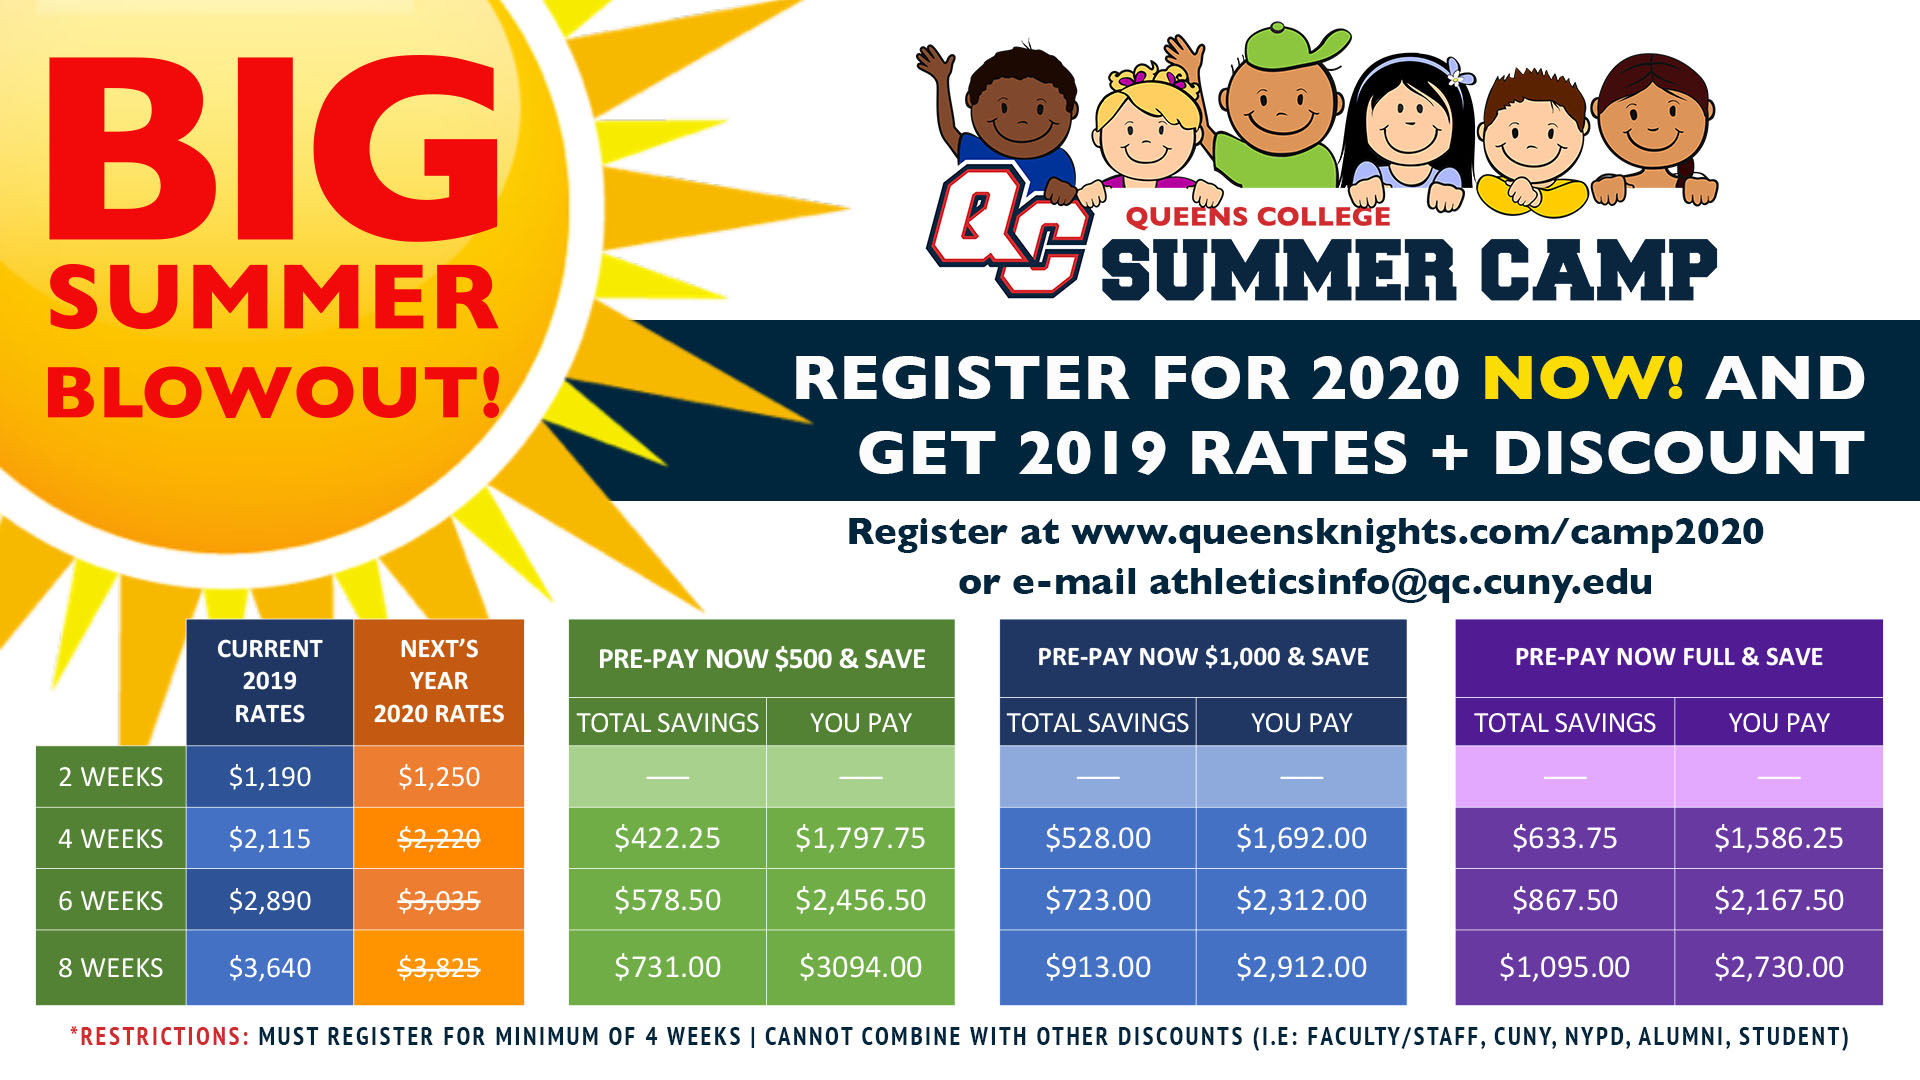 Cuny Calendar Summer 2020.Register For 2020 Summer Camp Today At 2019 Prices Queens